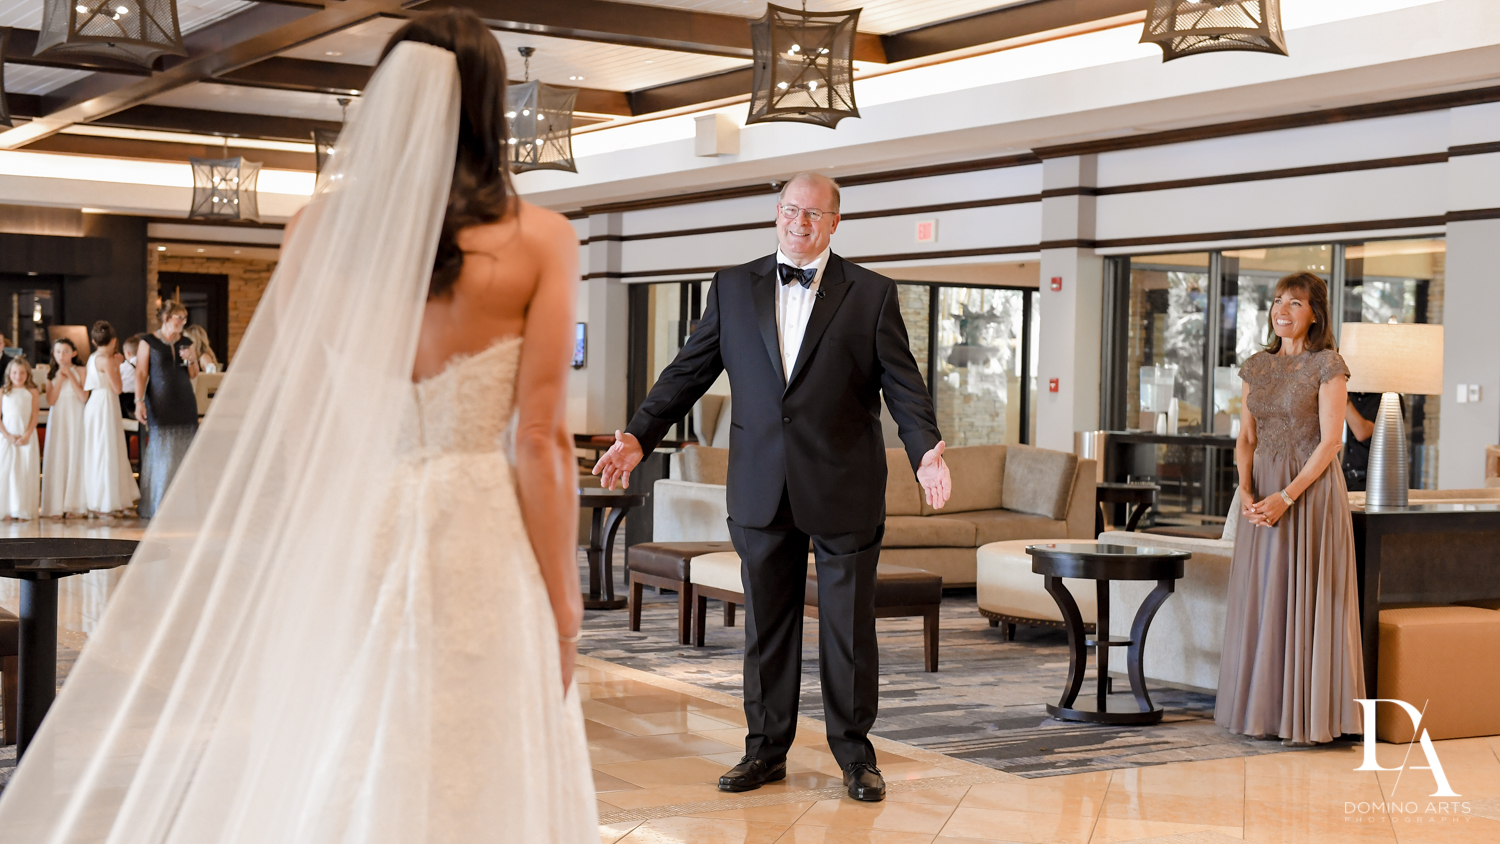 first dad look at Stunning Golf Course Wedding at PGA National Palm Beach by Domino Arts Photography